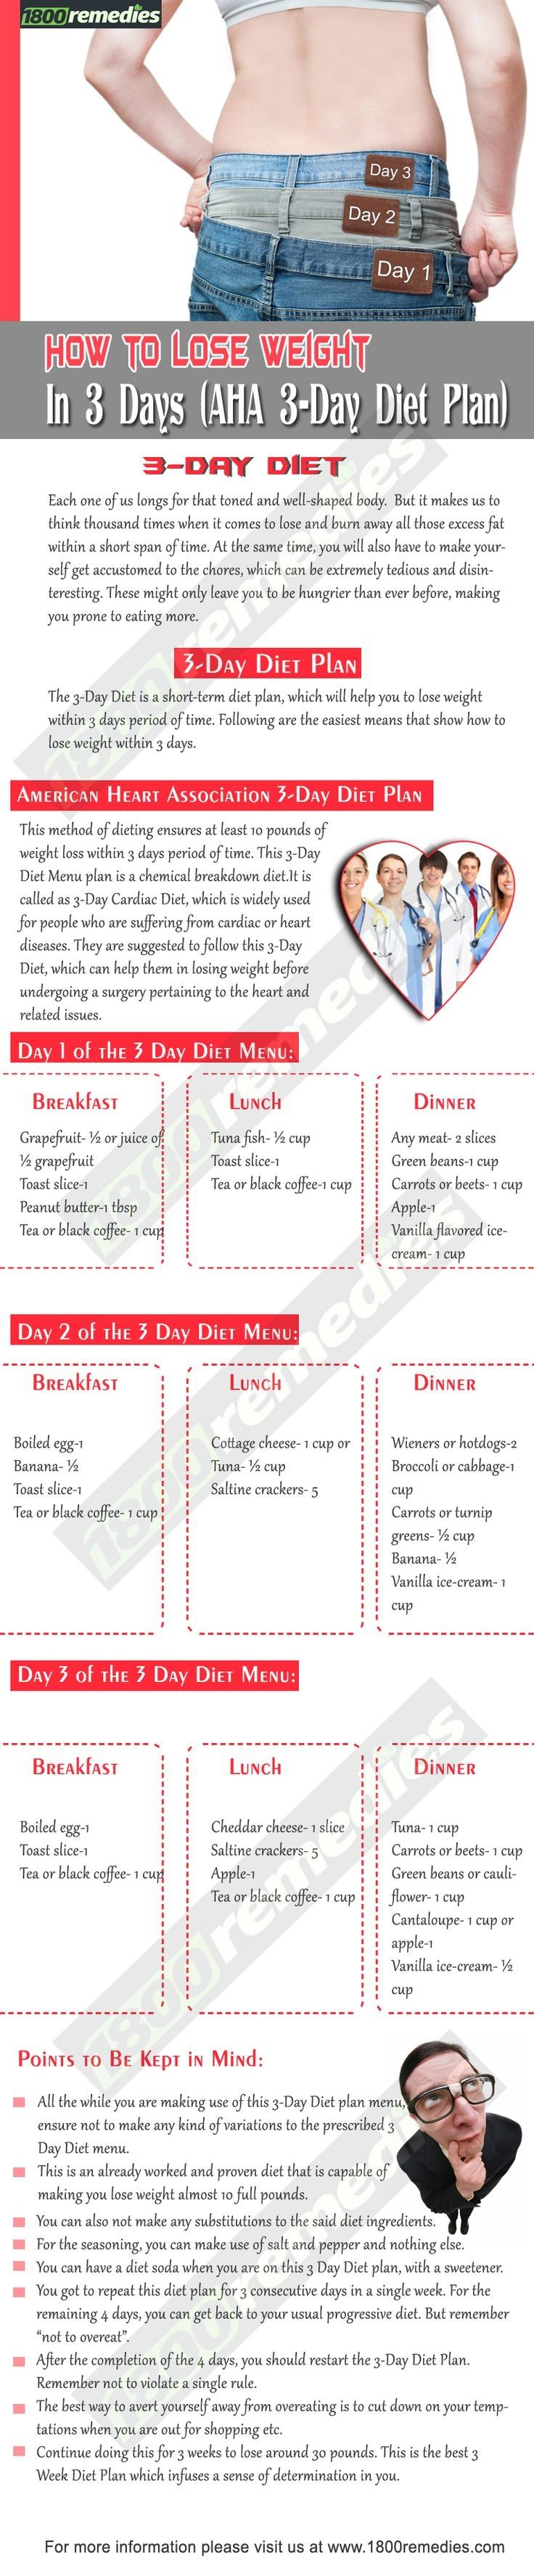 how to lose fat fast for women, shakes for weight loss, losing the belly fat - The 3-Day Diet is a short-term diet plan, which will help you to lose weight within 3 days period of time. Following are the easiest means that show how to lose weight within 3 days. #weightlosssmoothies